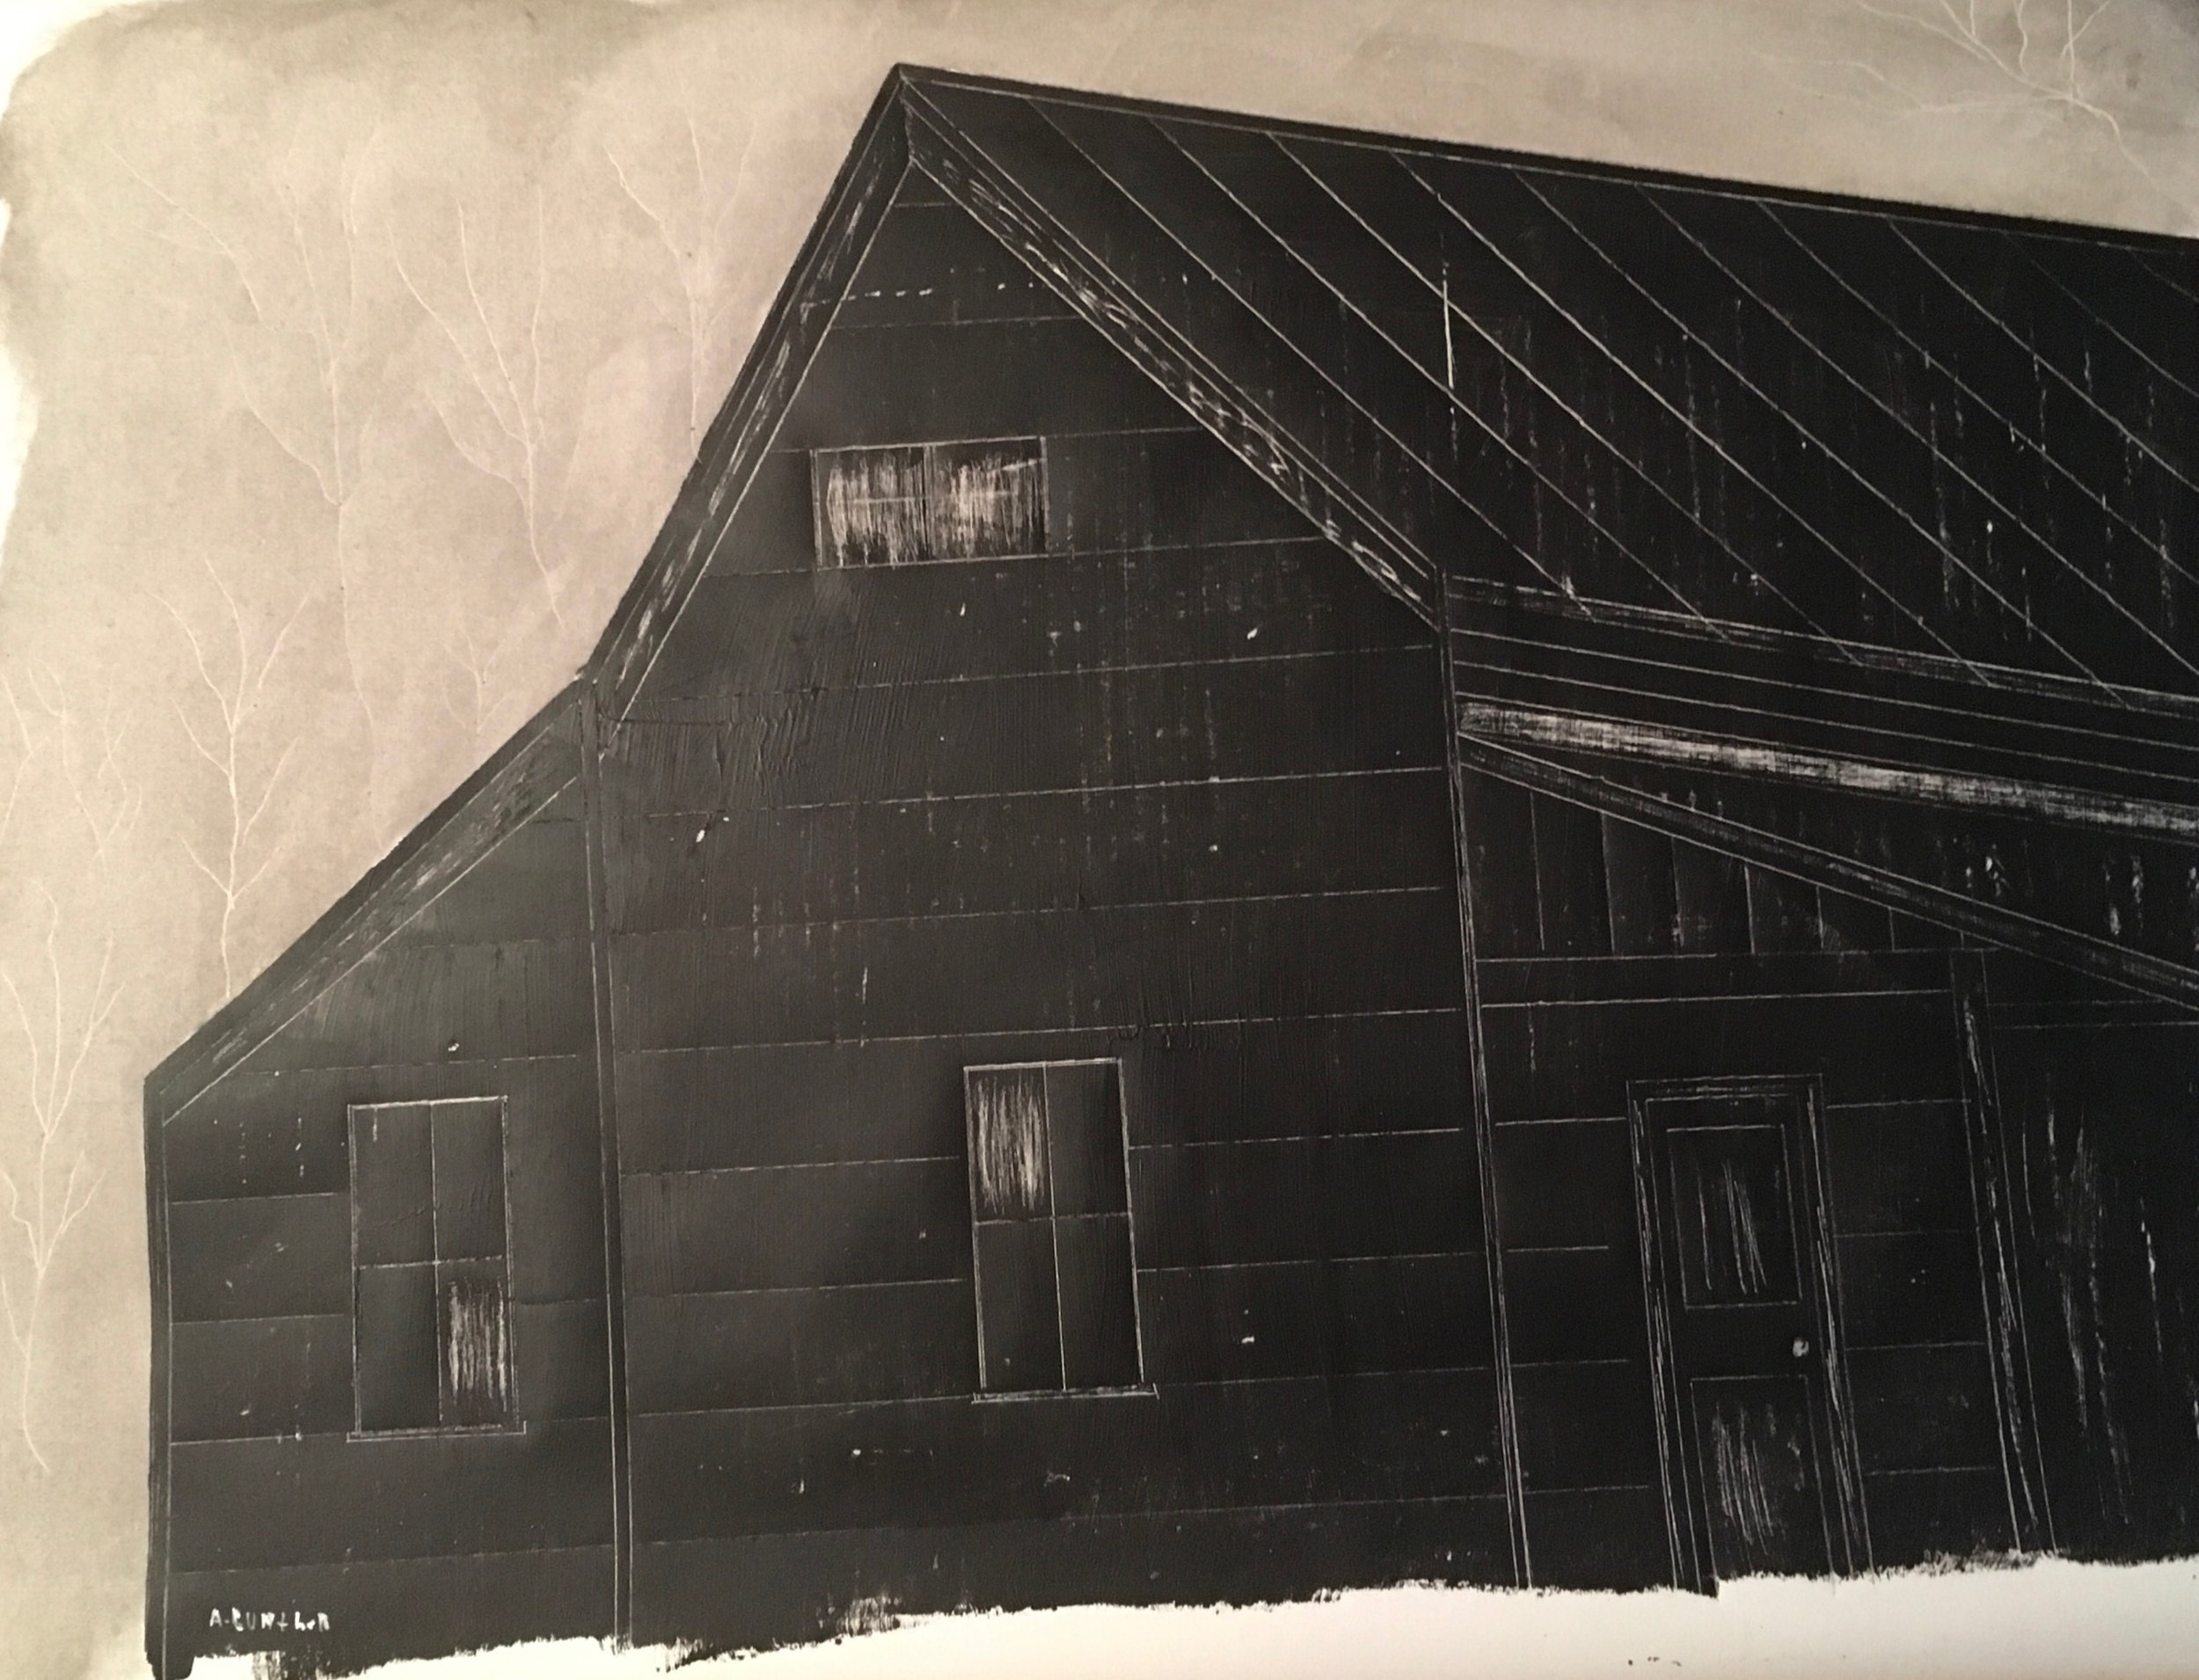 Art Gunther Title: Old House in Negative Size: 24 x 30 Price: $650